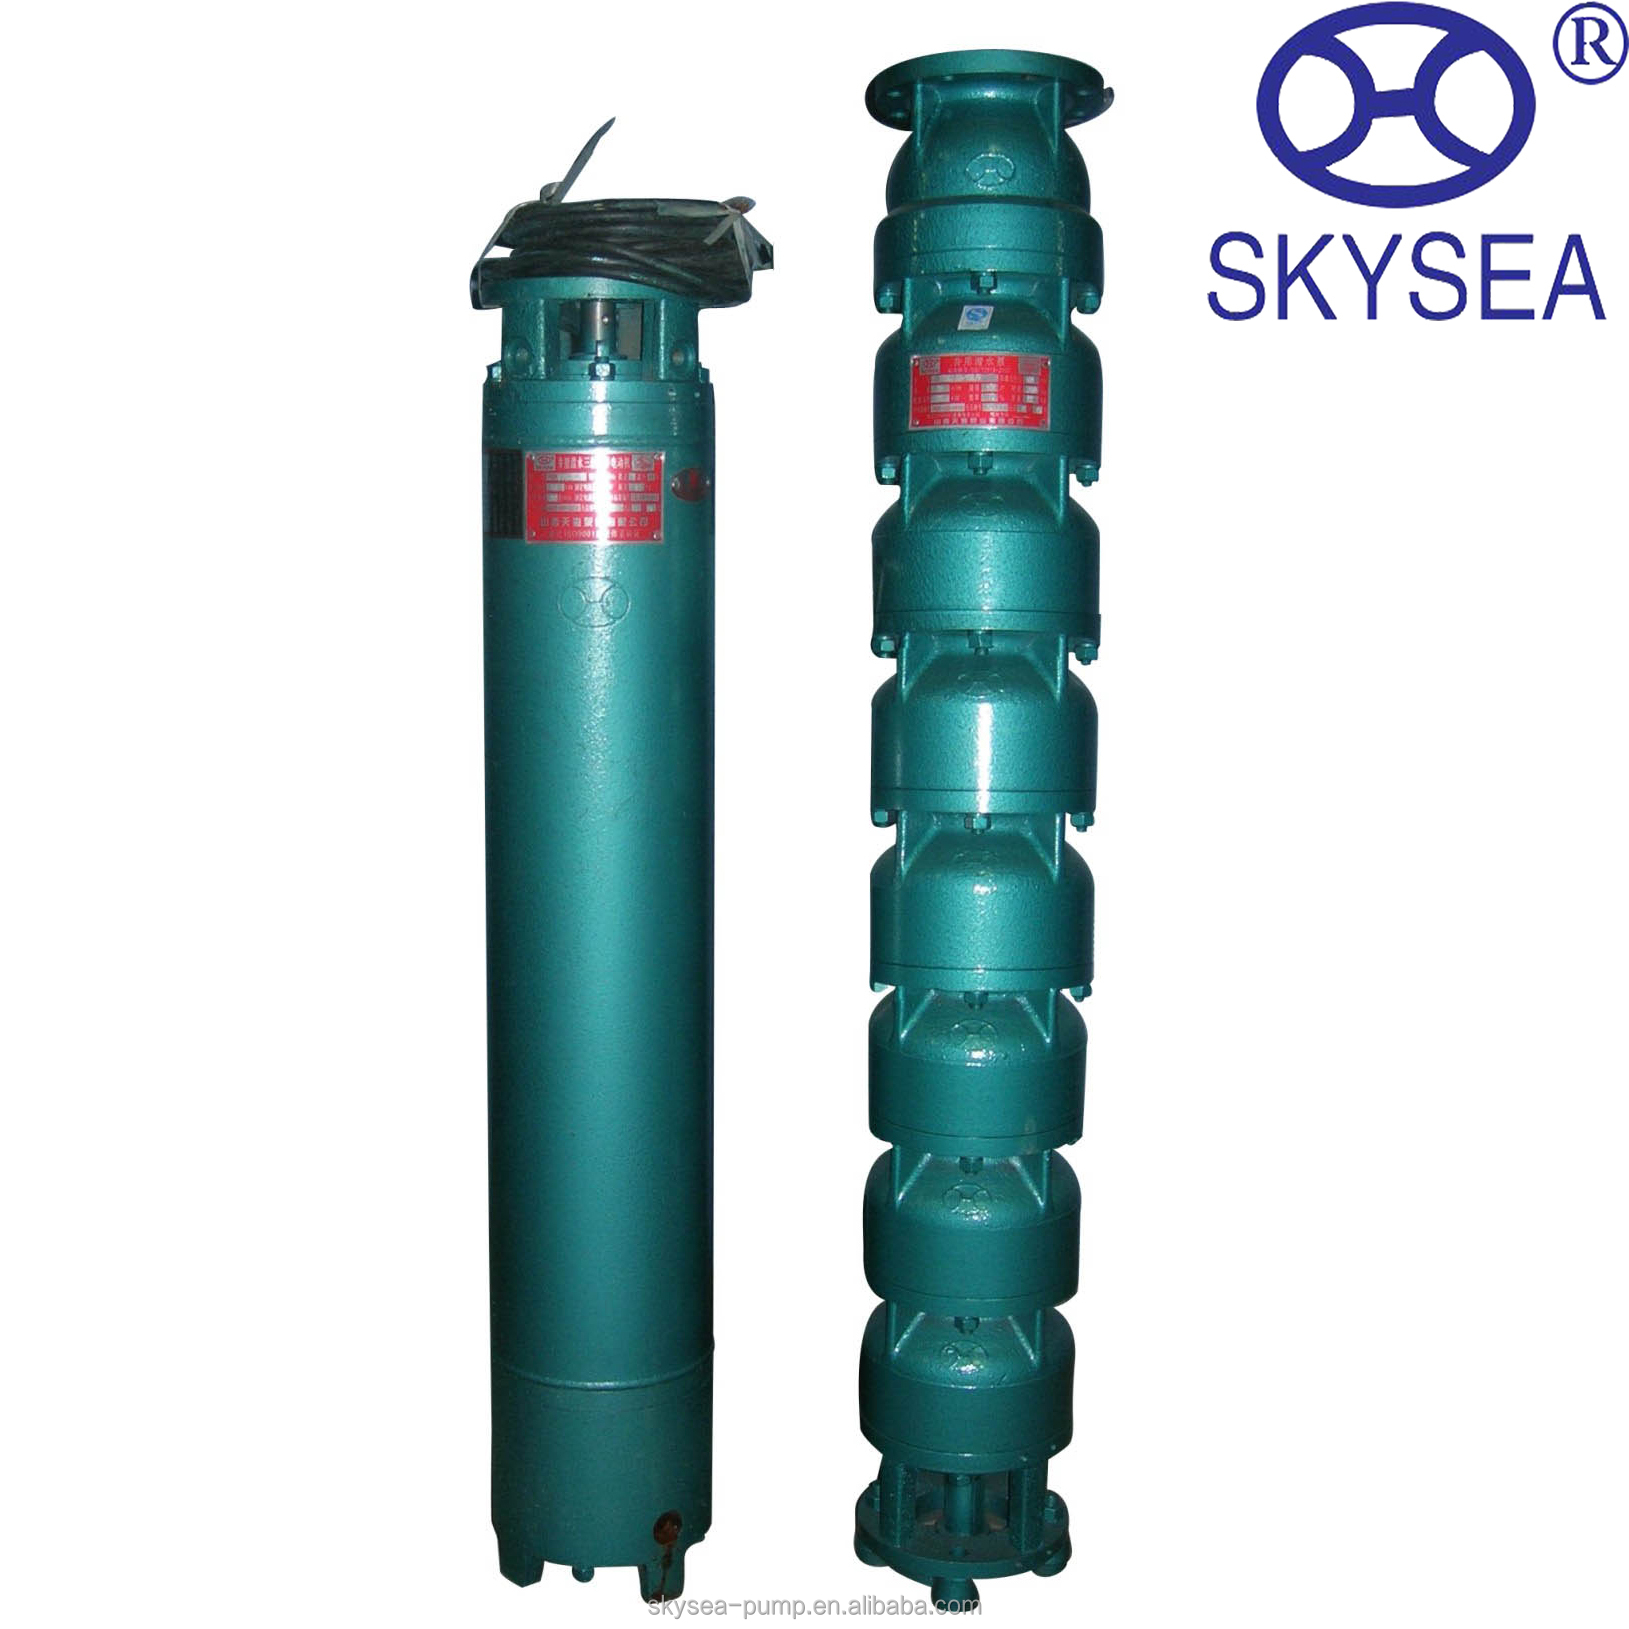 Cooling Water Pumps, Cooling Water Pumps Suppliers and Manufacturers ...